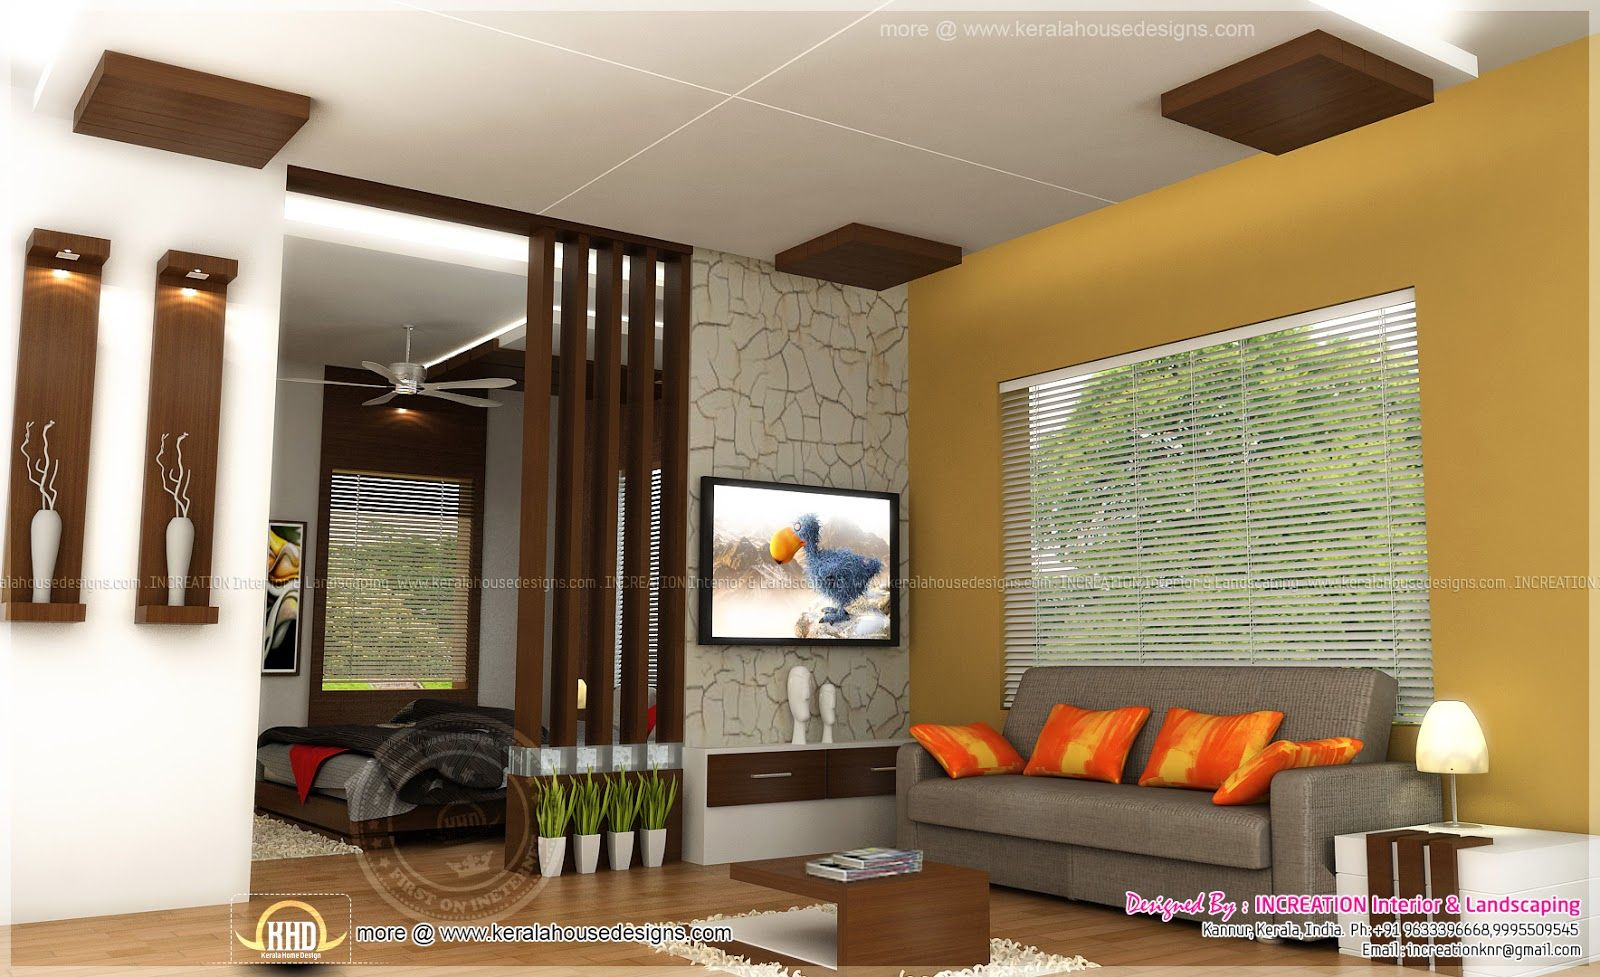 Interior Design Renderings Living Room Dining Bedroom Wash For More Info About These Contact INCREATION